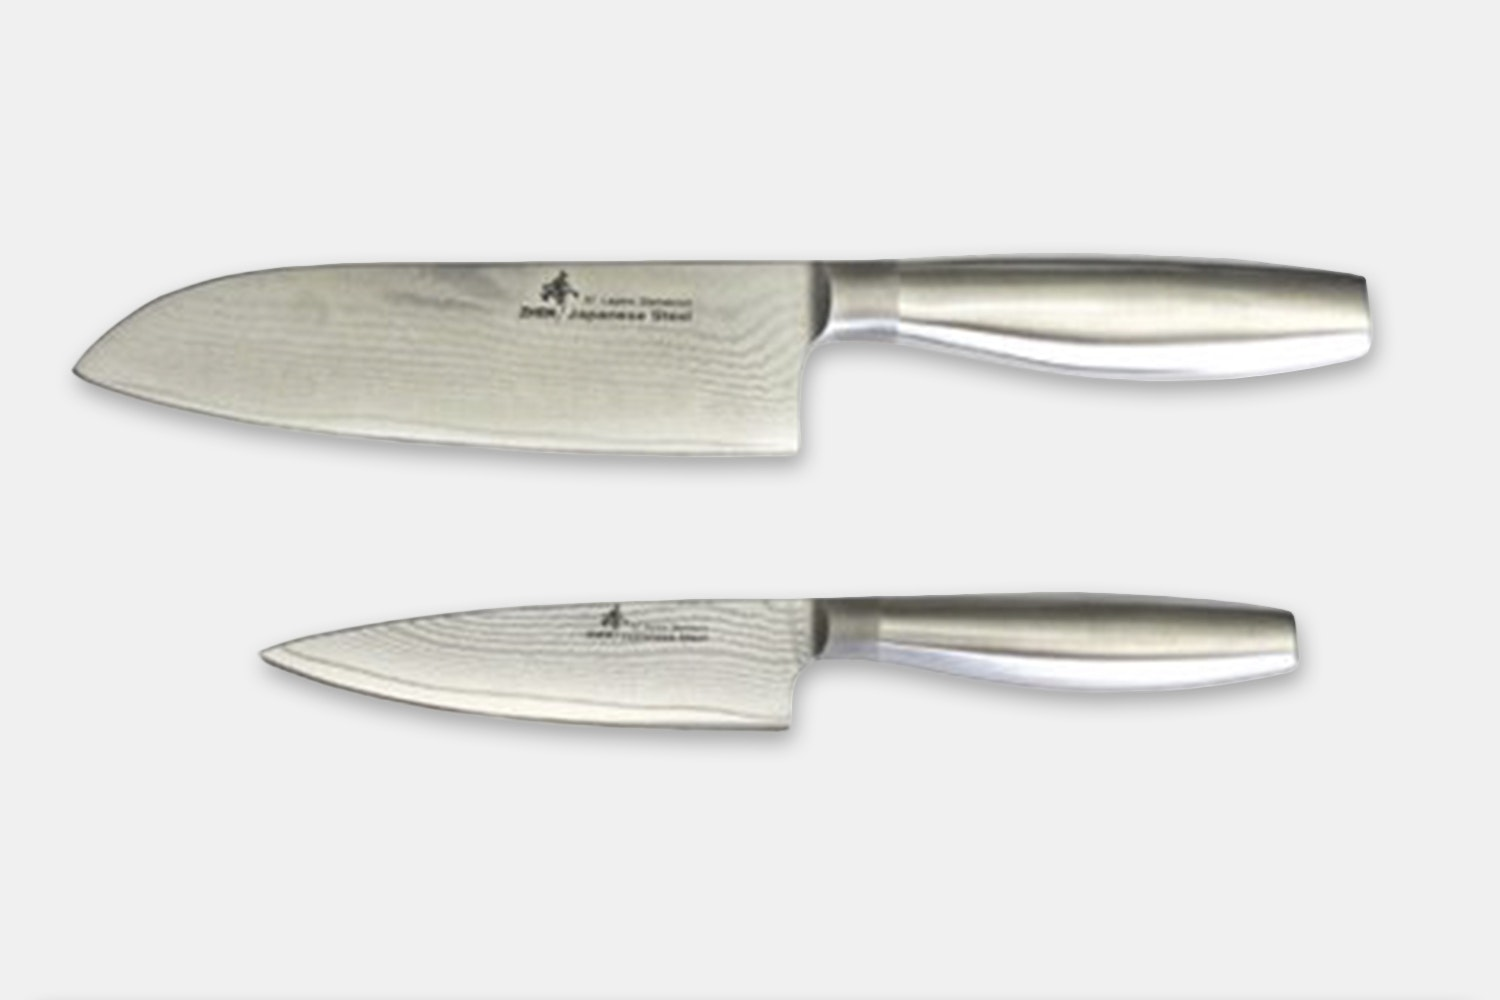 D15S - 2 Pc Santoku Set - VG-10 67 Layers Damascus Steel  (+$27)